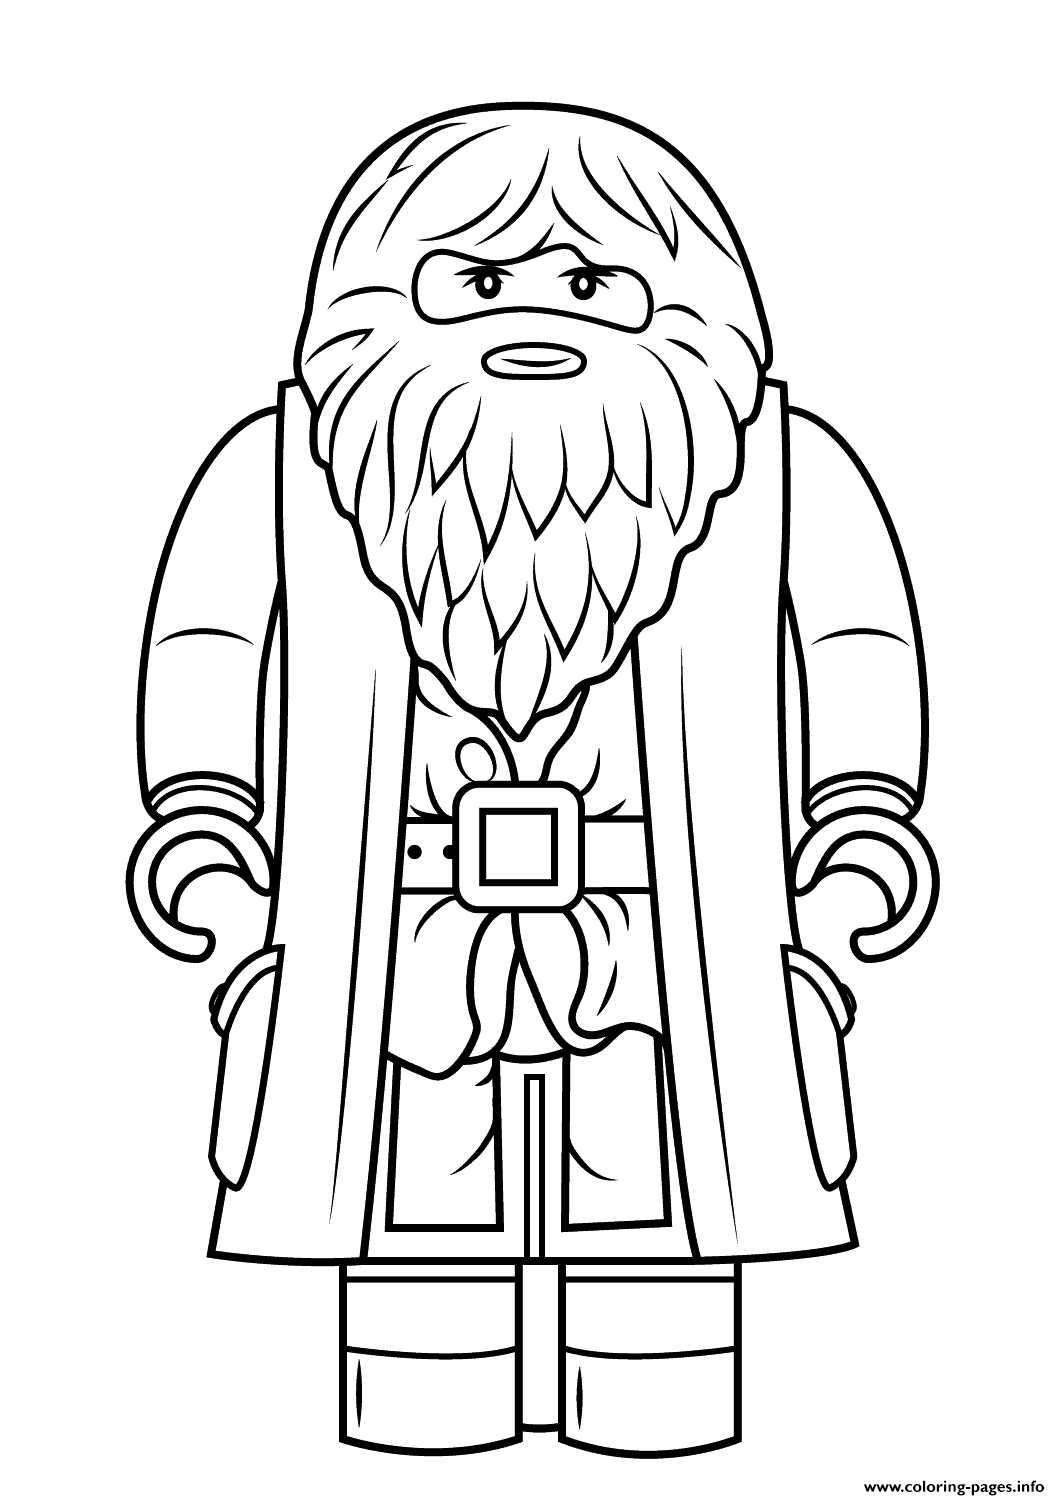 Lego Rubeus Hagrid Minifigure Harry Potter coloring pages